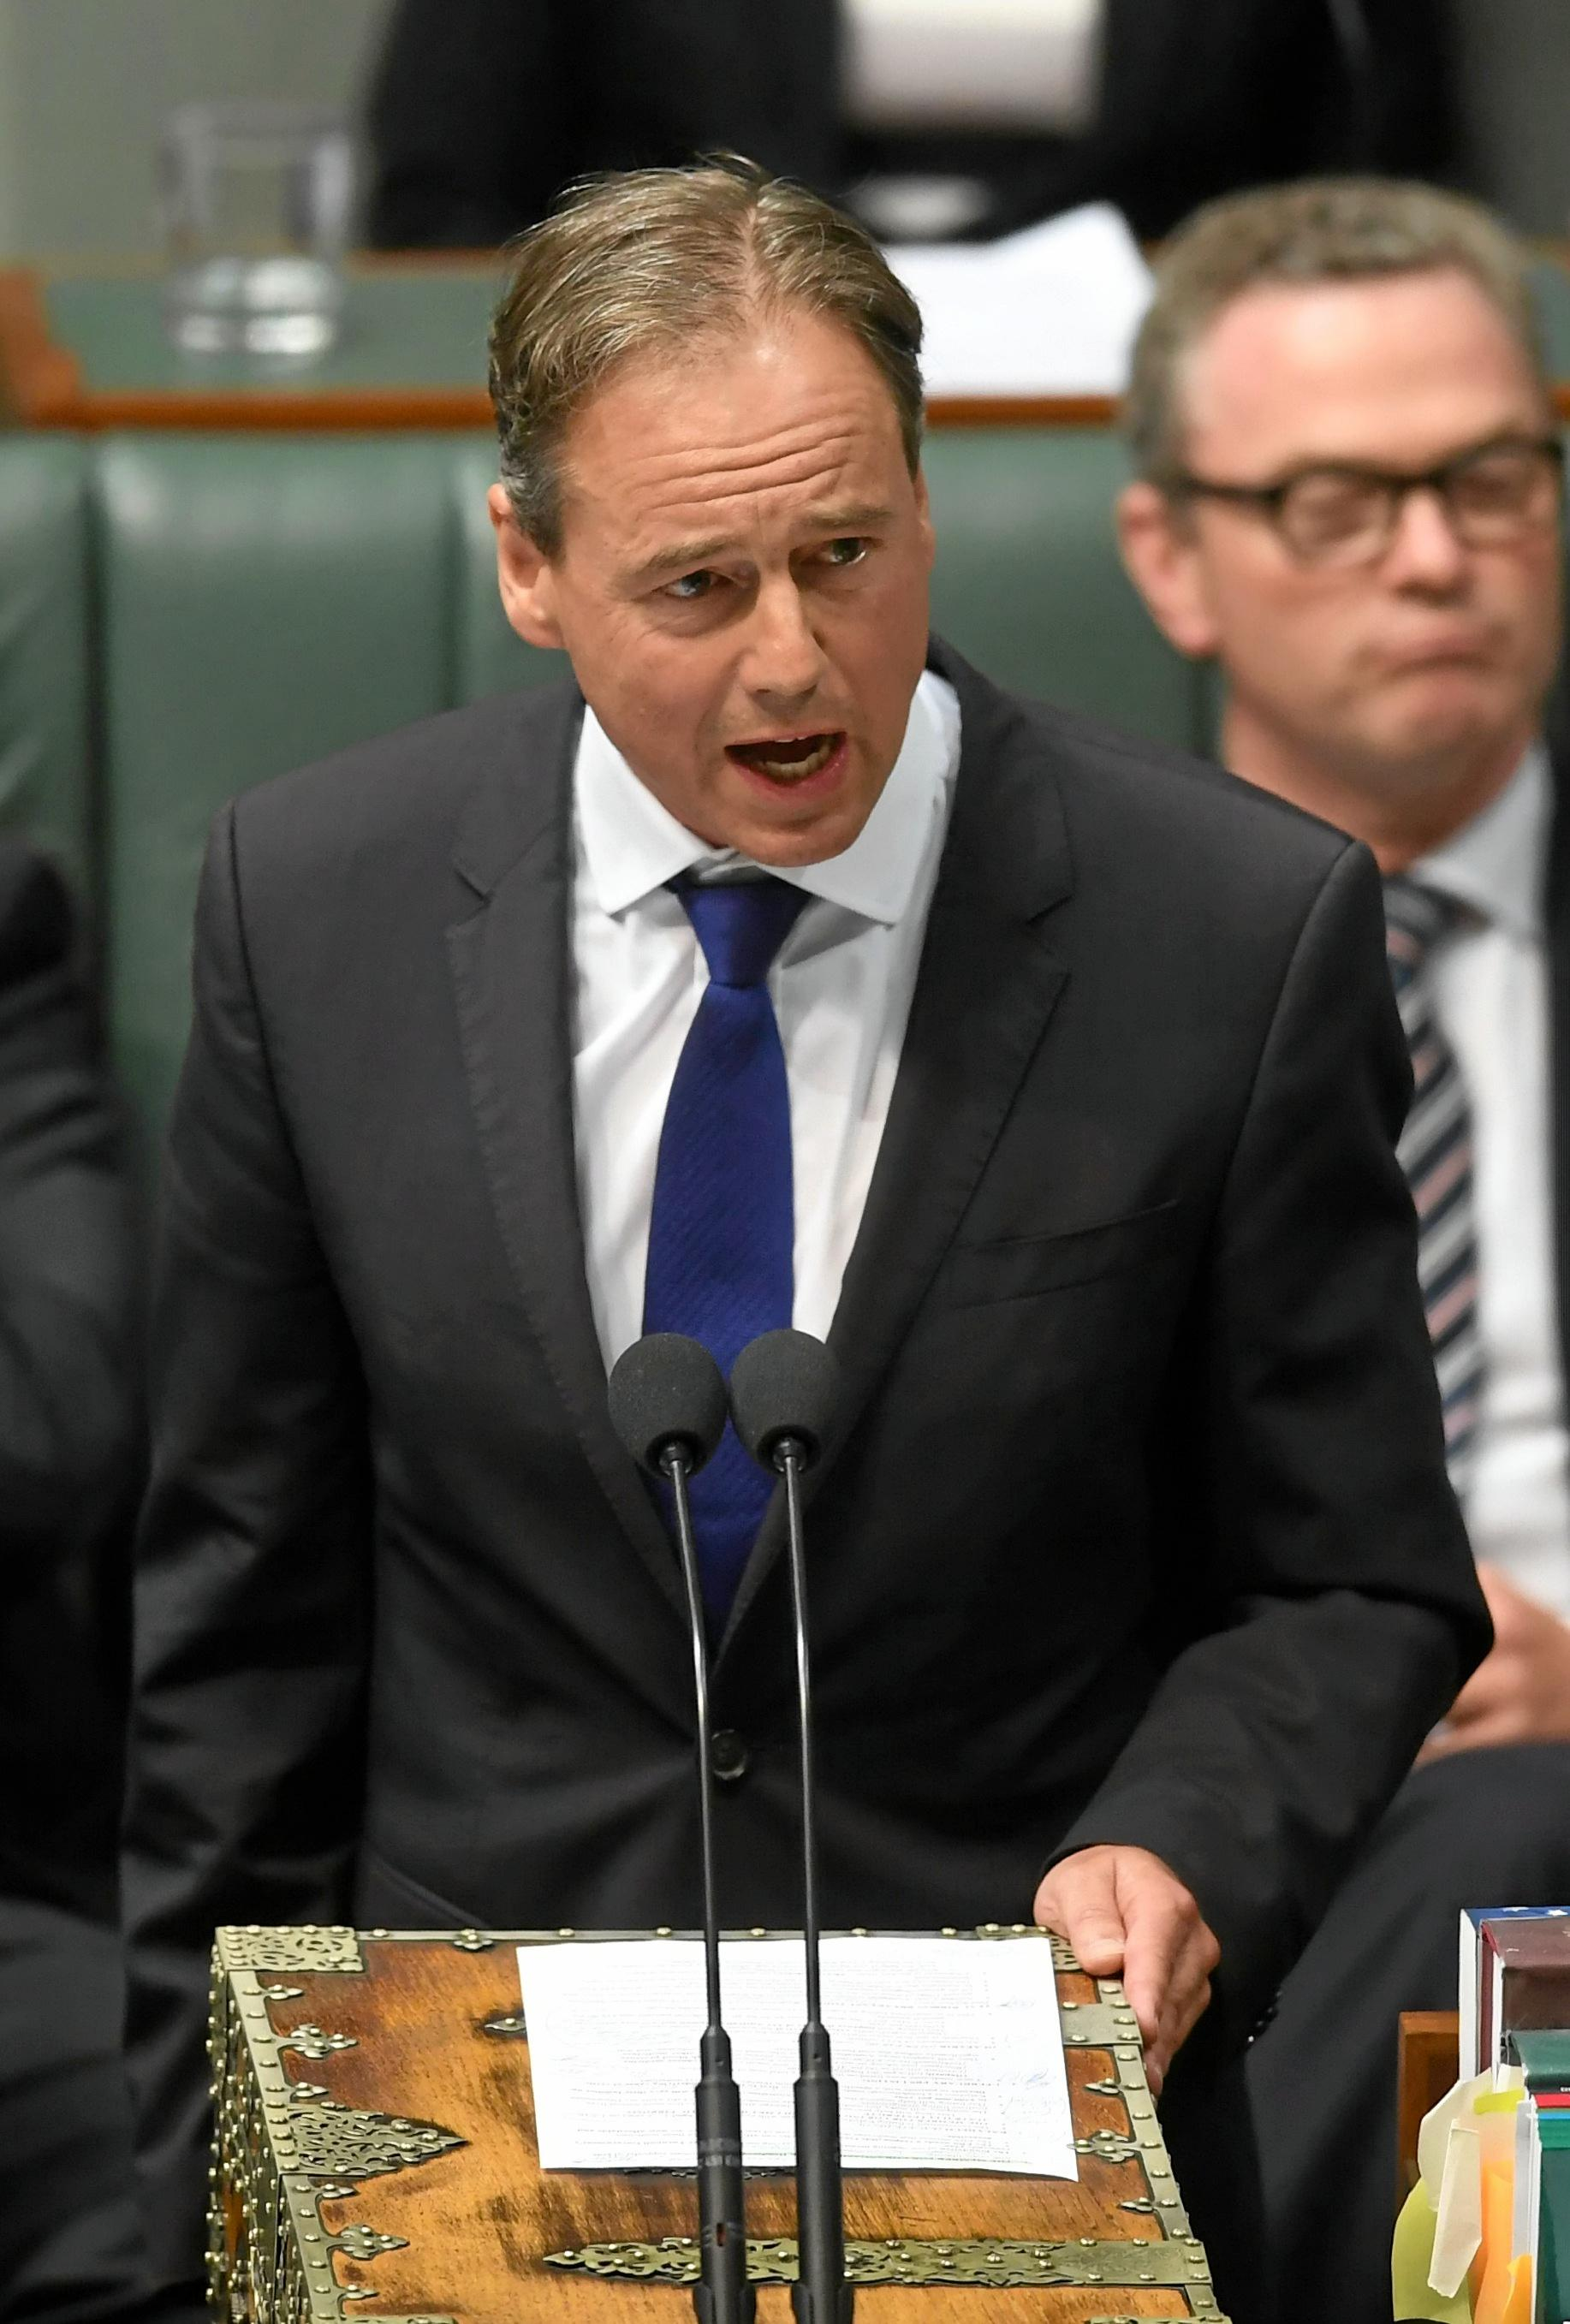 Australia's Health Minister Greg Hunt speaks during House of Representatives Question Time at Parliament House in Canberra, Monday, Feb. 13, 2017. (AAP Image/Lukas Coch) NO ARCHIVING